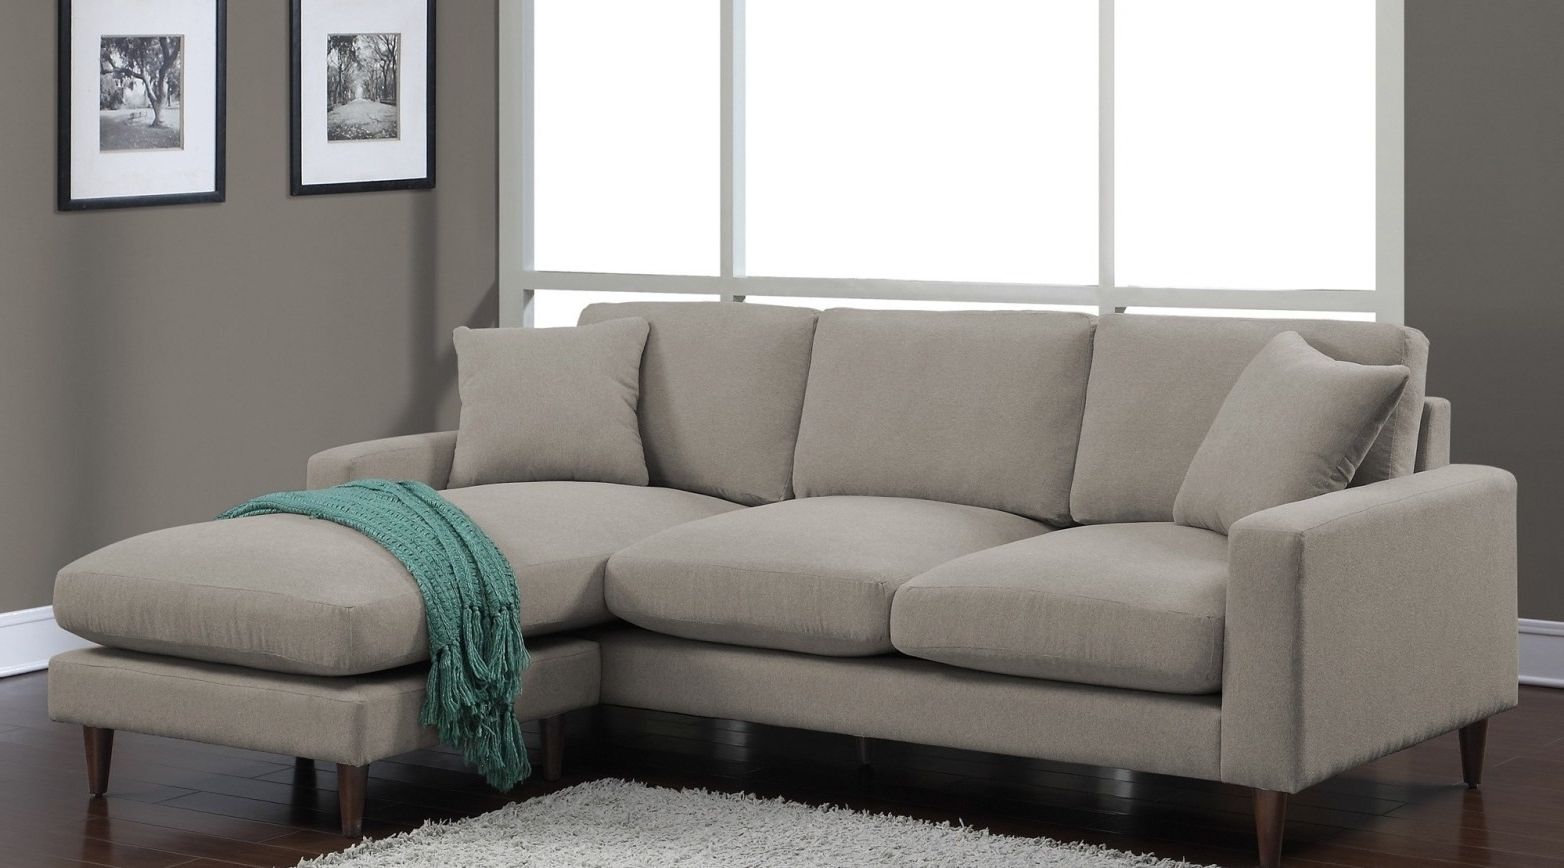 Fashionable Vancouver Sectional Sofas For Best Of Sectional Sofa Bed Vancouver Bc – Mediasupload (View 13 of 20)